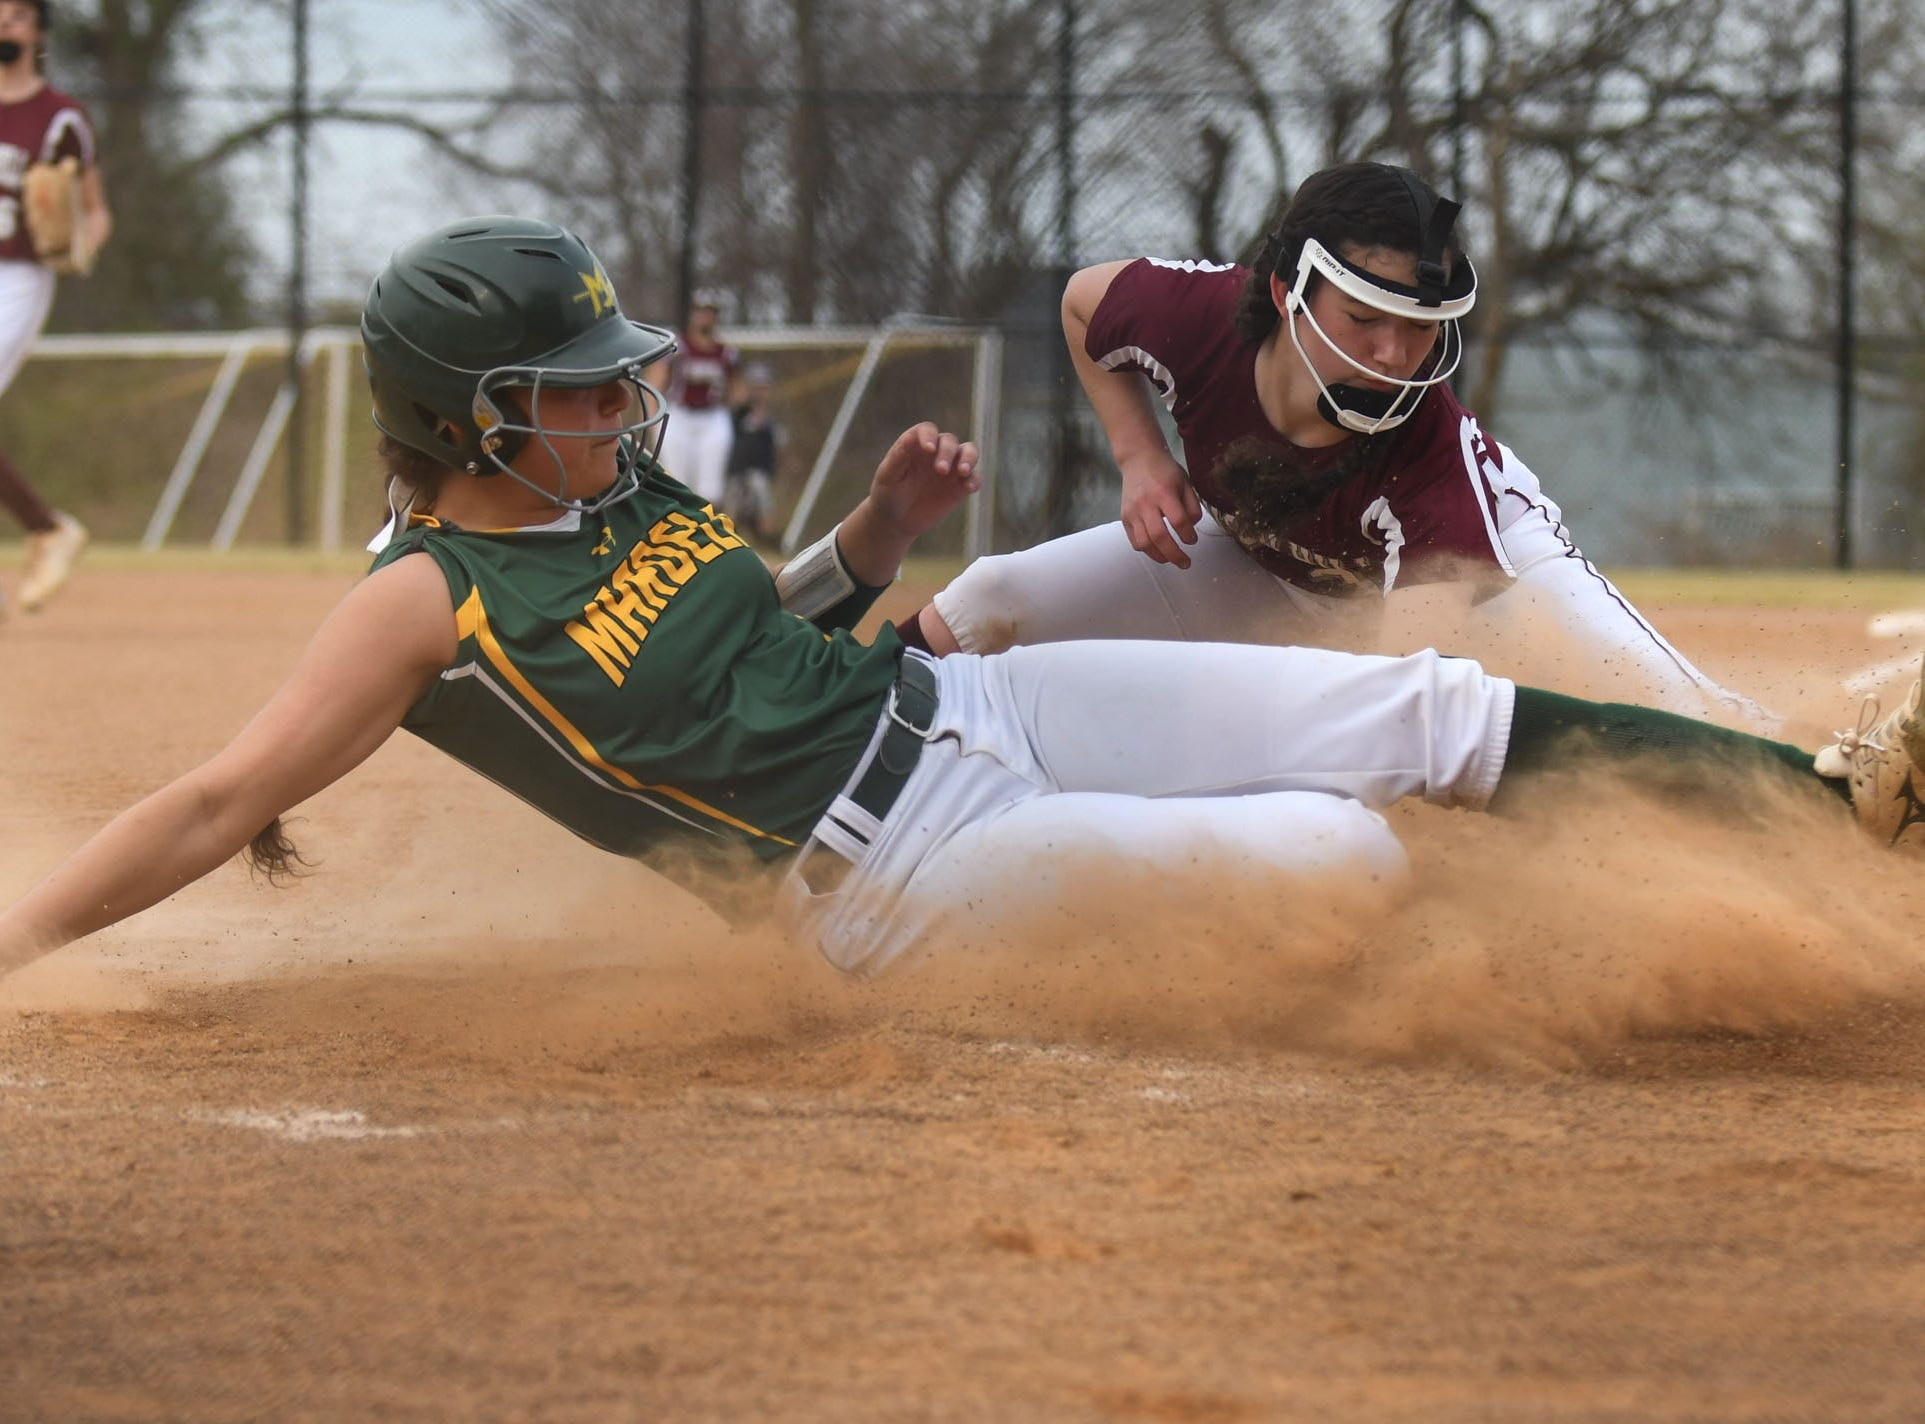 Mardela's Megan Caputo slides into home against Snow Hill on Monday, April 8, 2019 in Snow Hill, Md.